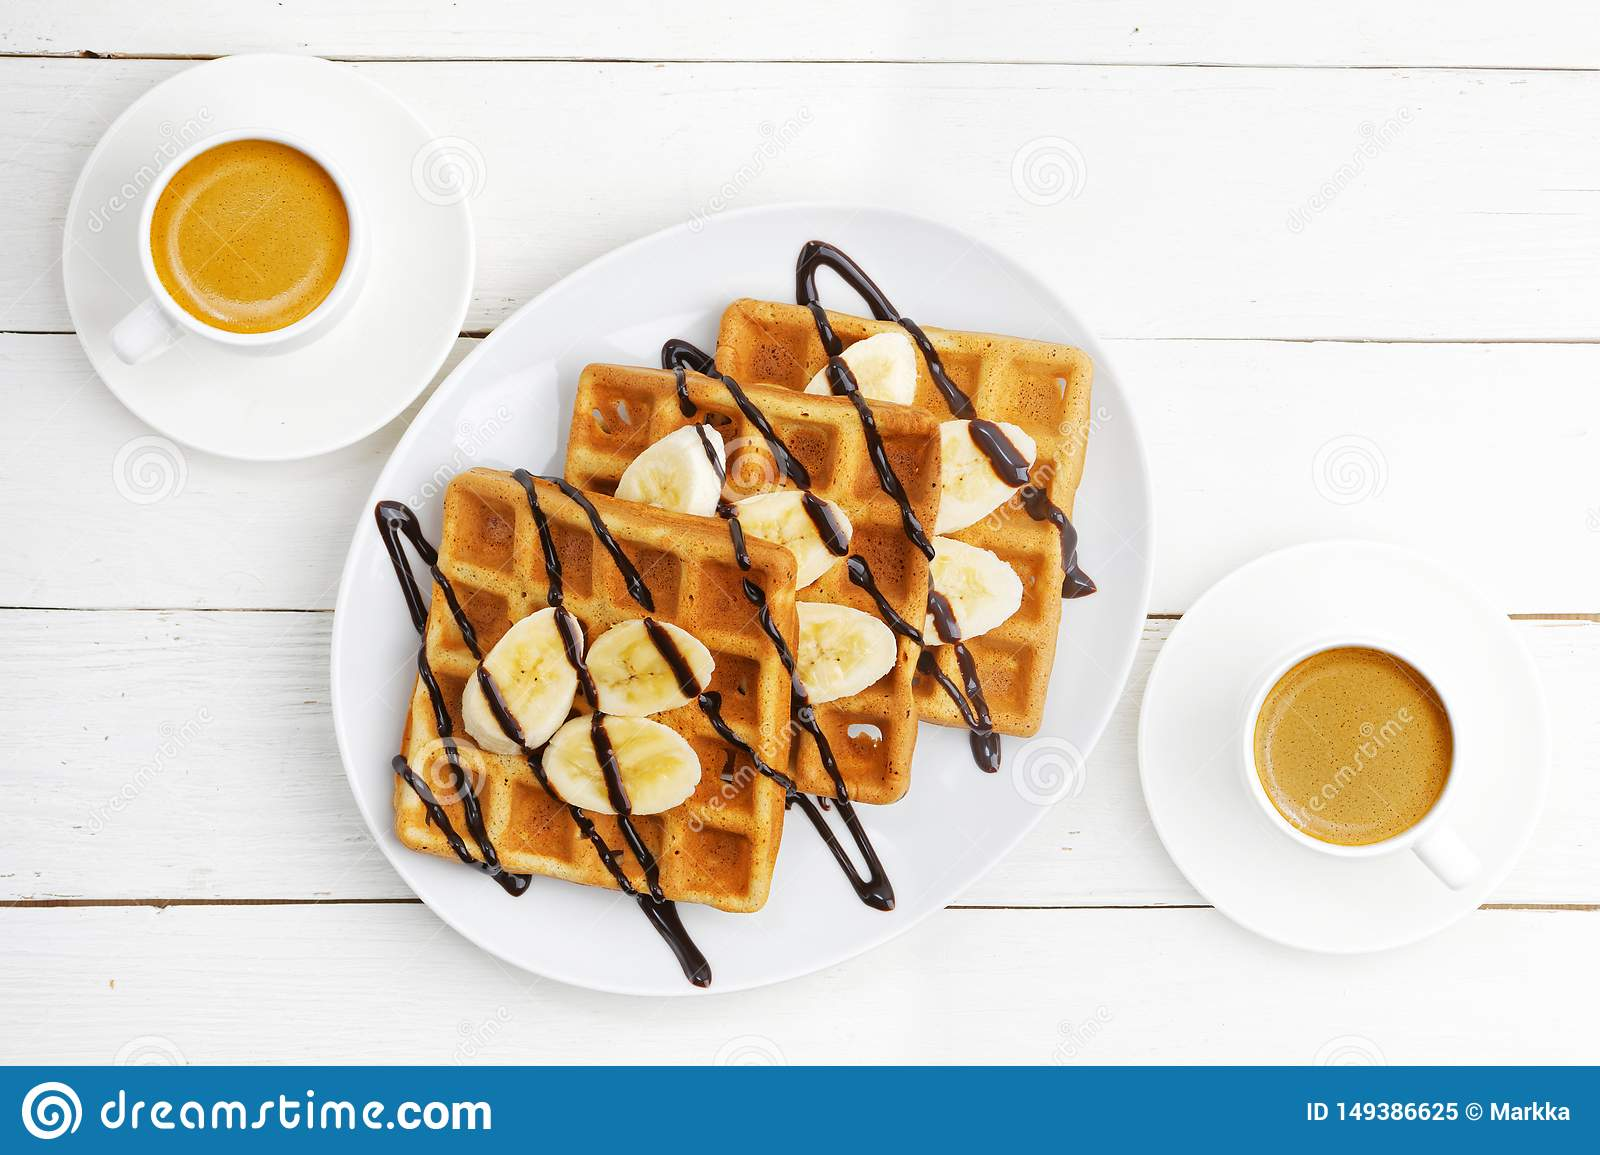 Homemade soft waffles with banana slices topped with chocolate and two cup of coffee on white wooden table